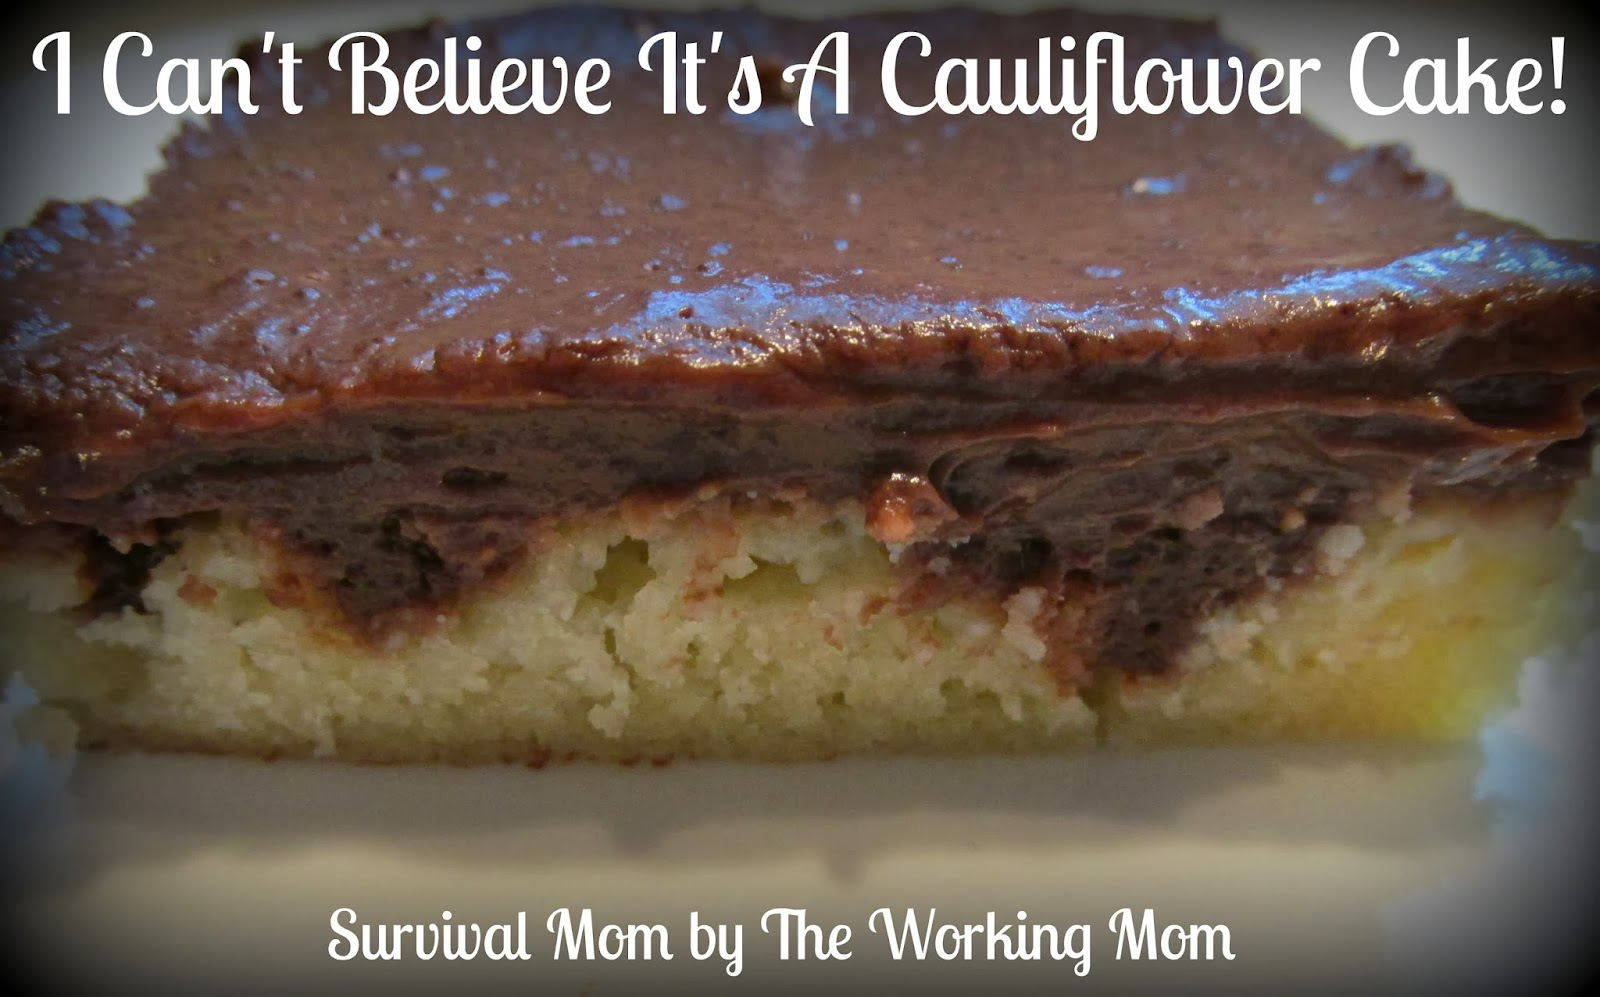 Cauliflower & Chocolate Cake Recipe - Guide For Moms